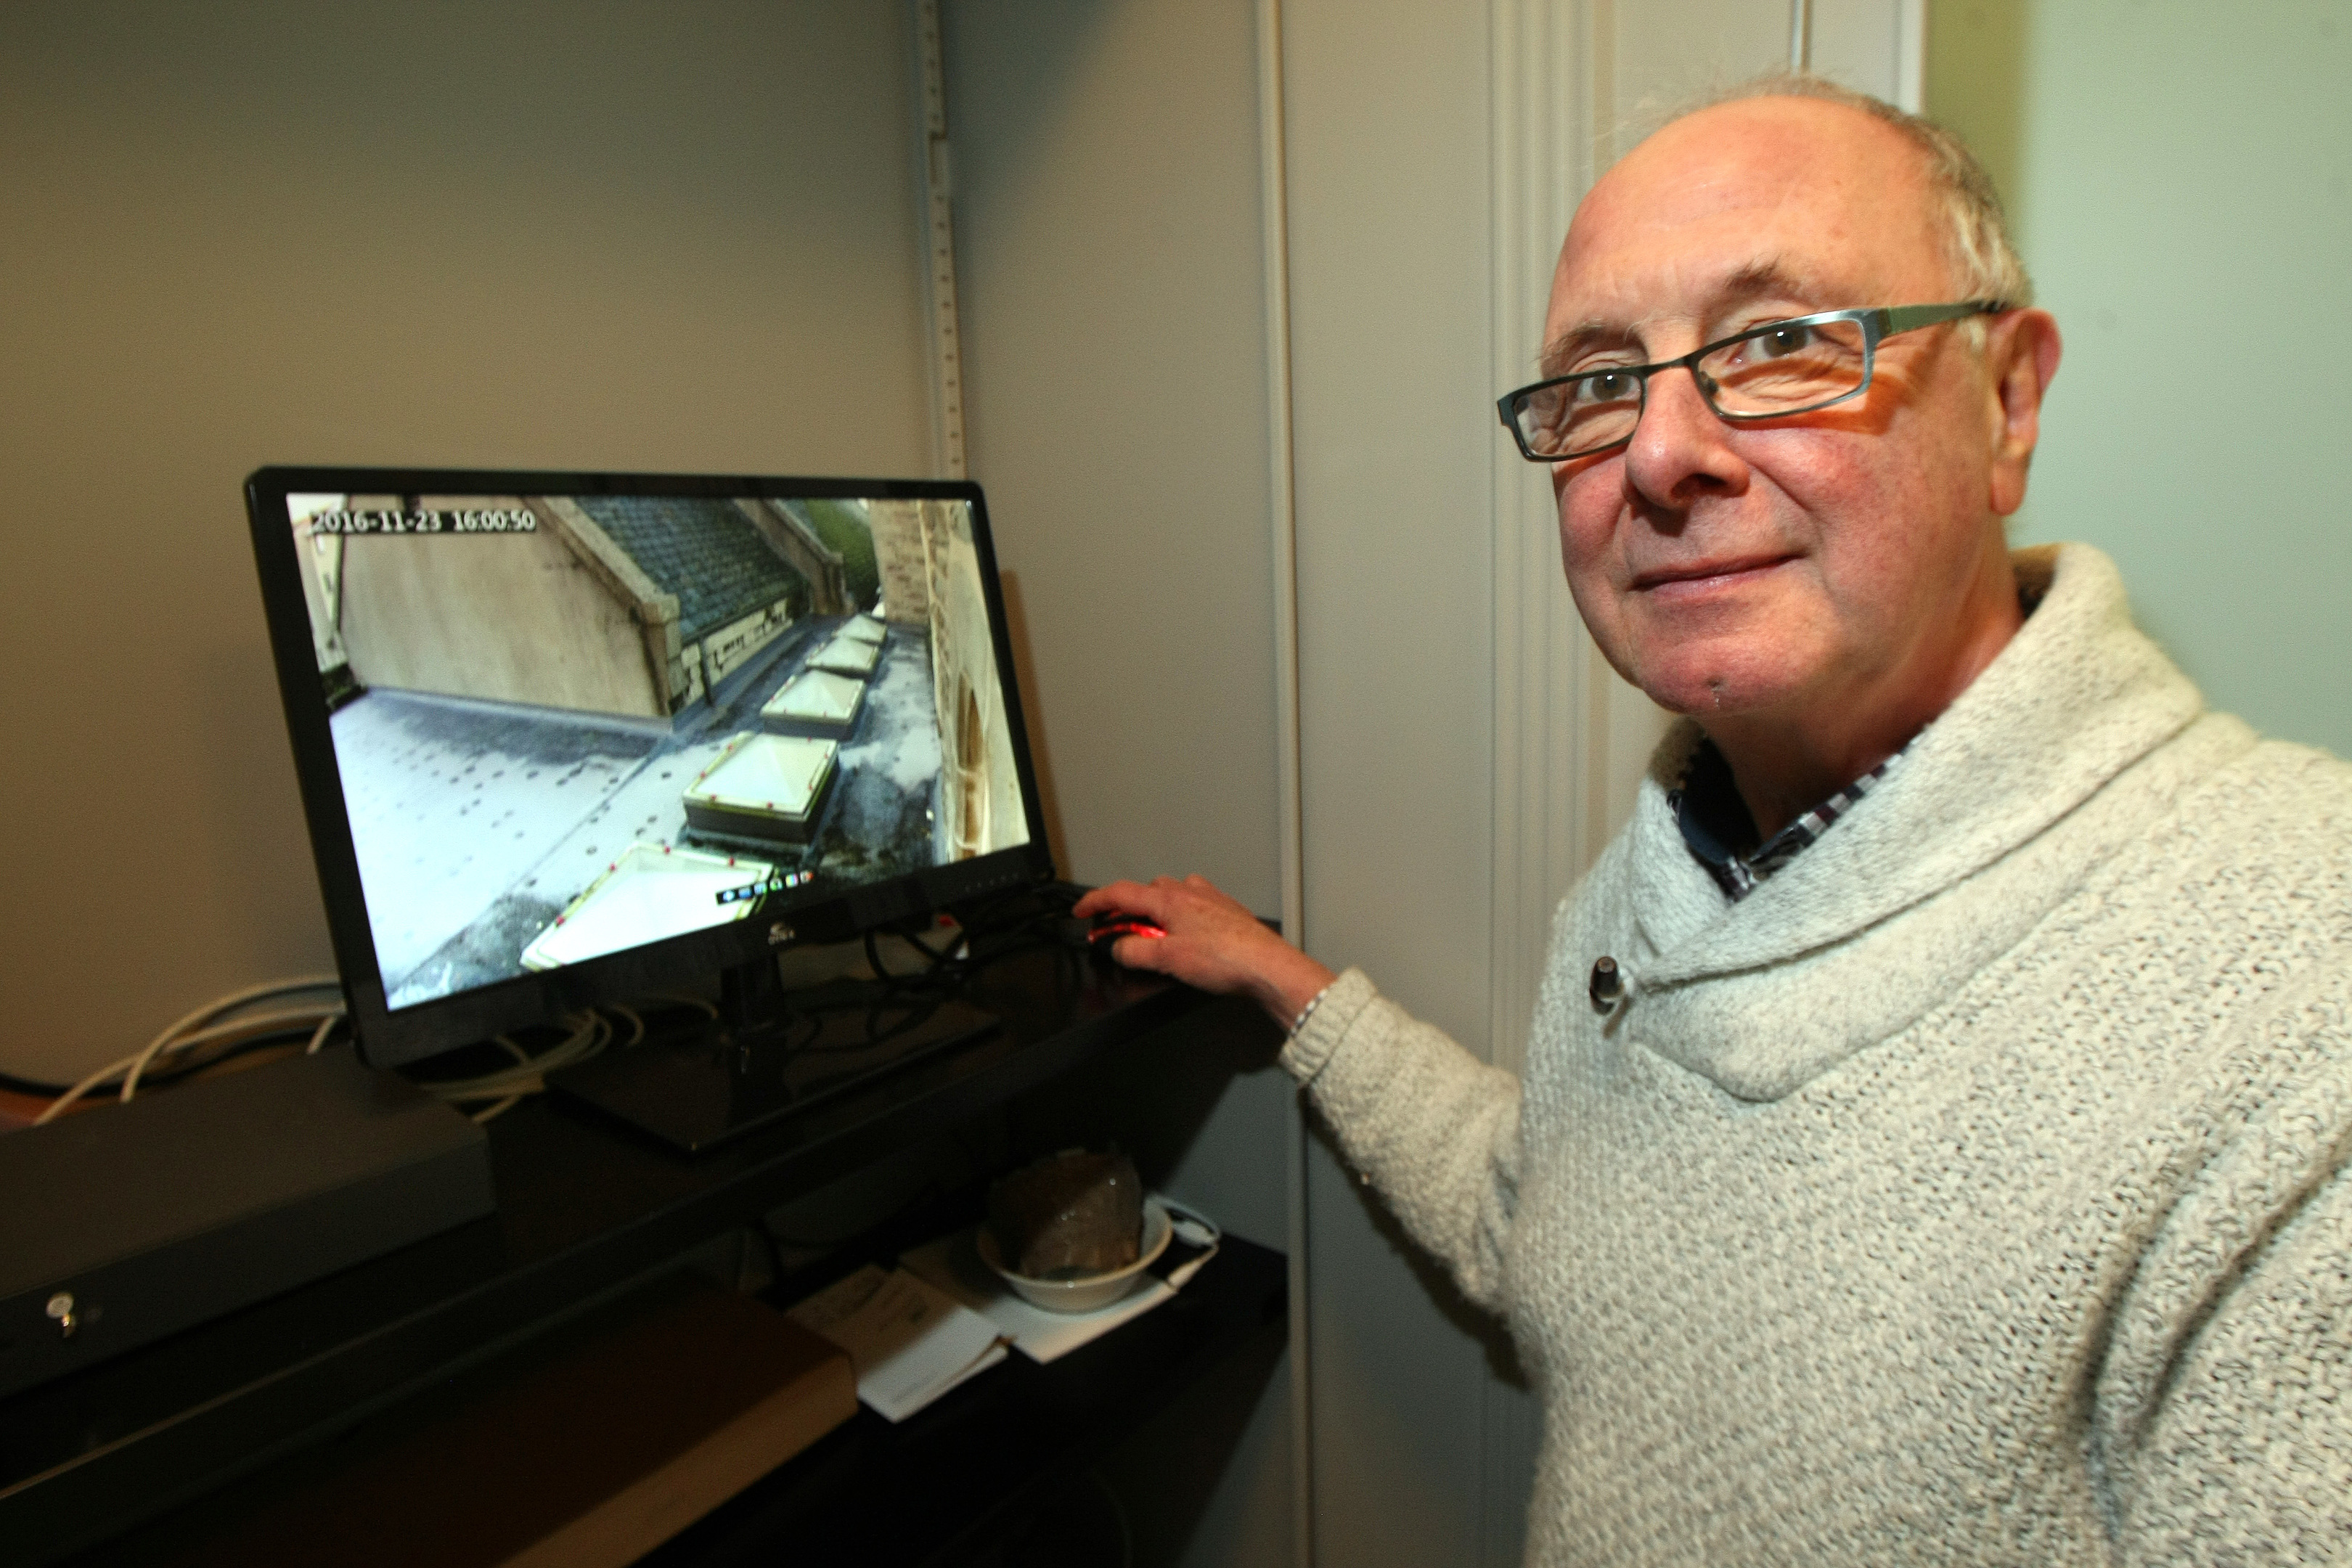 Reverend Thornthwaite with the church CCTV